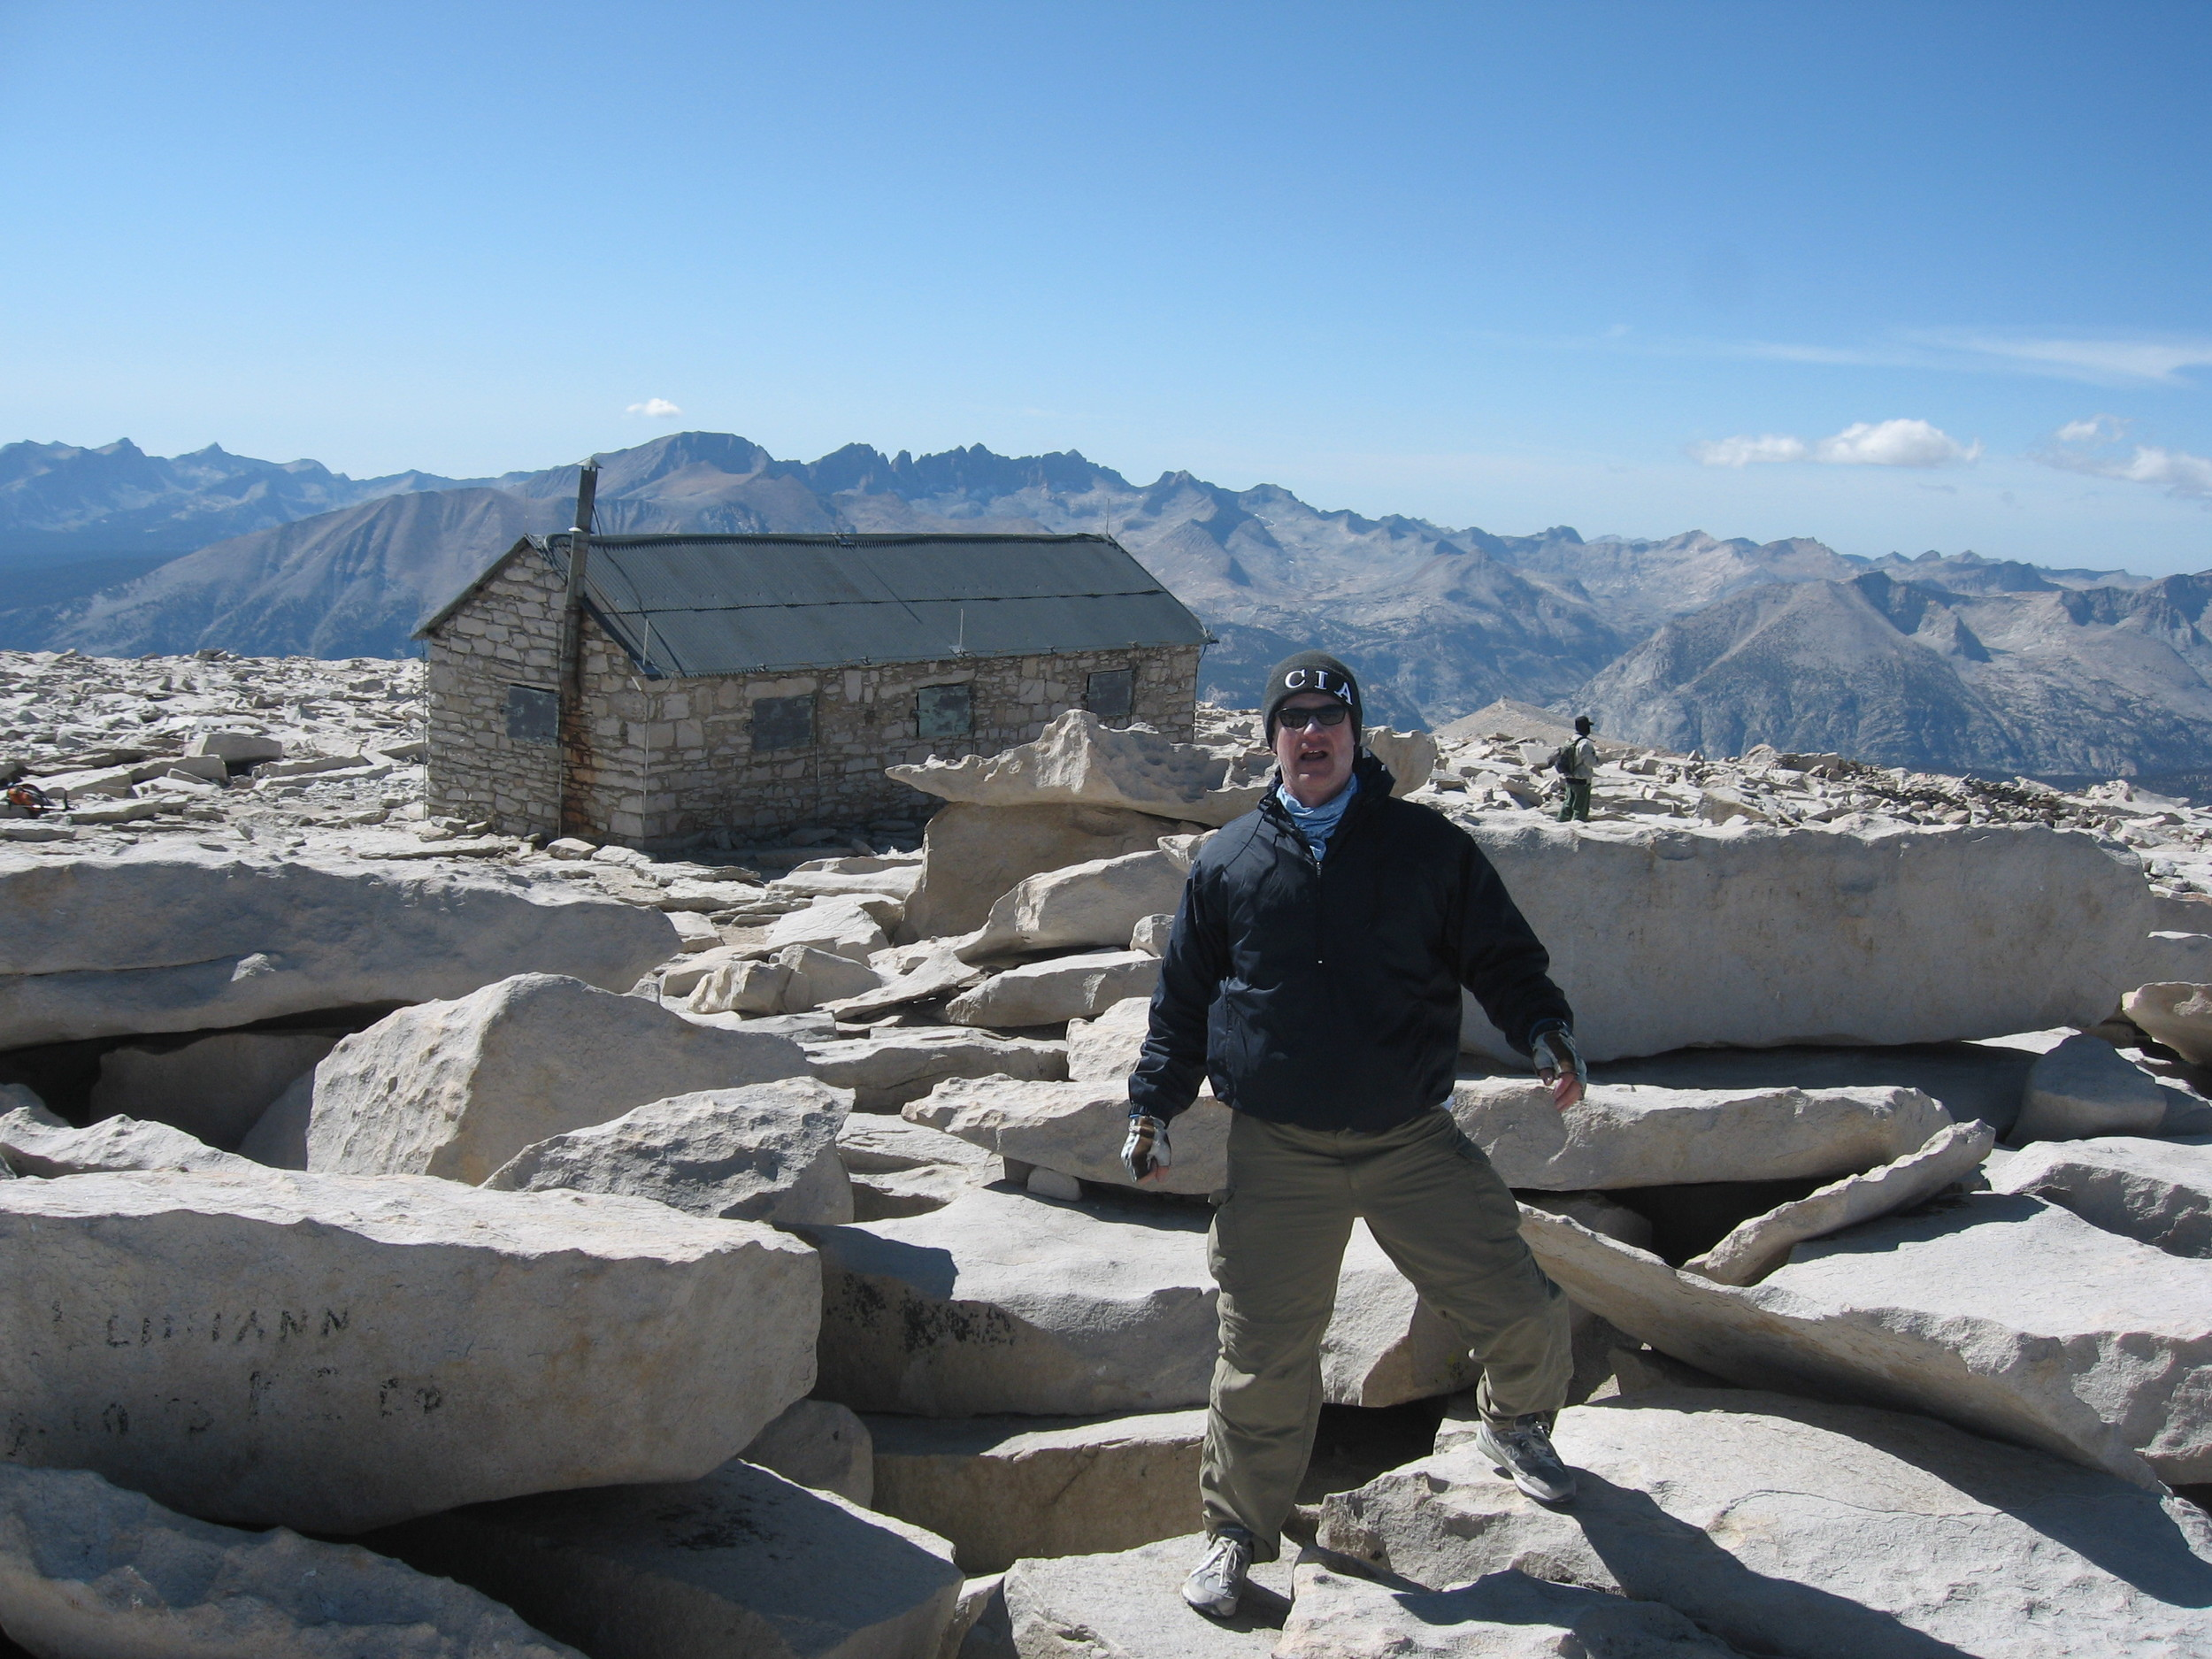 Summit of Mount Whitney   To make it to the top, keep putting one foot in front of the other.